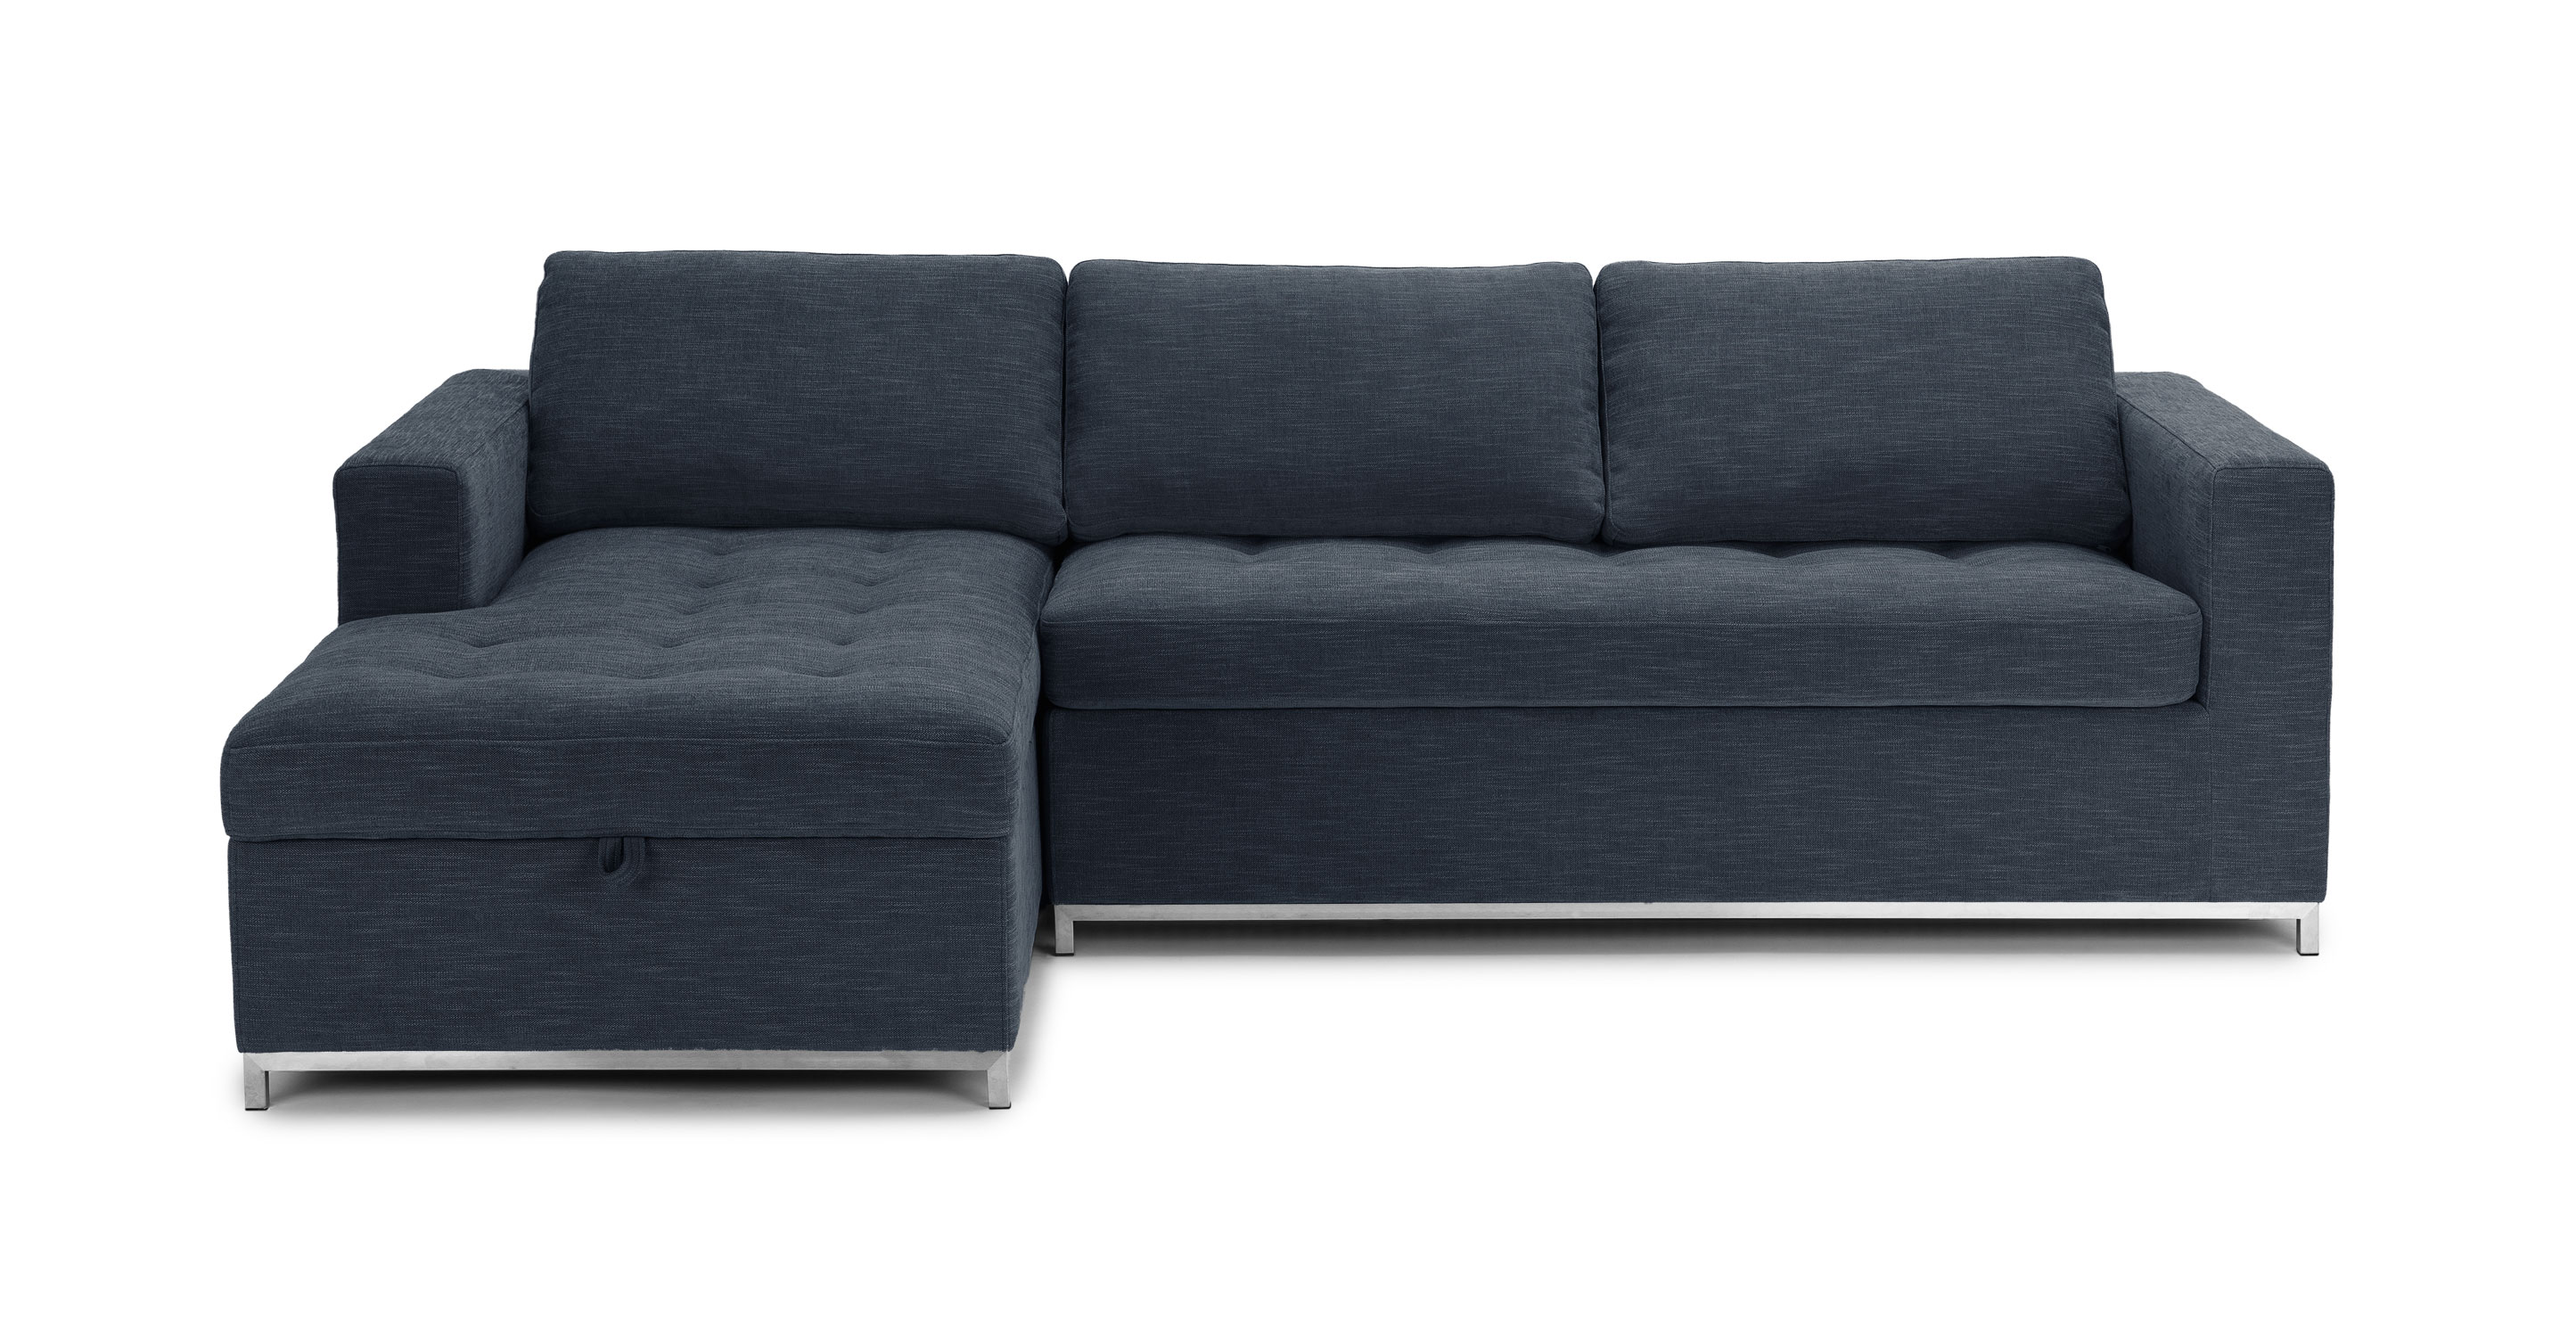 midnight blue sofa metal garden furniture soma left bed article